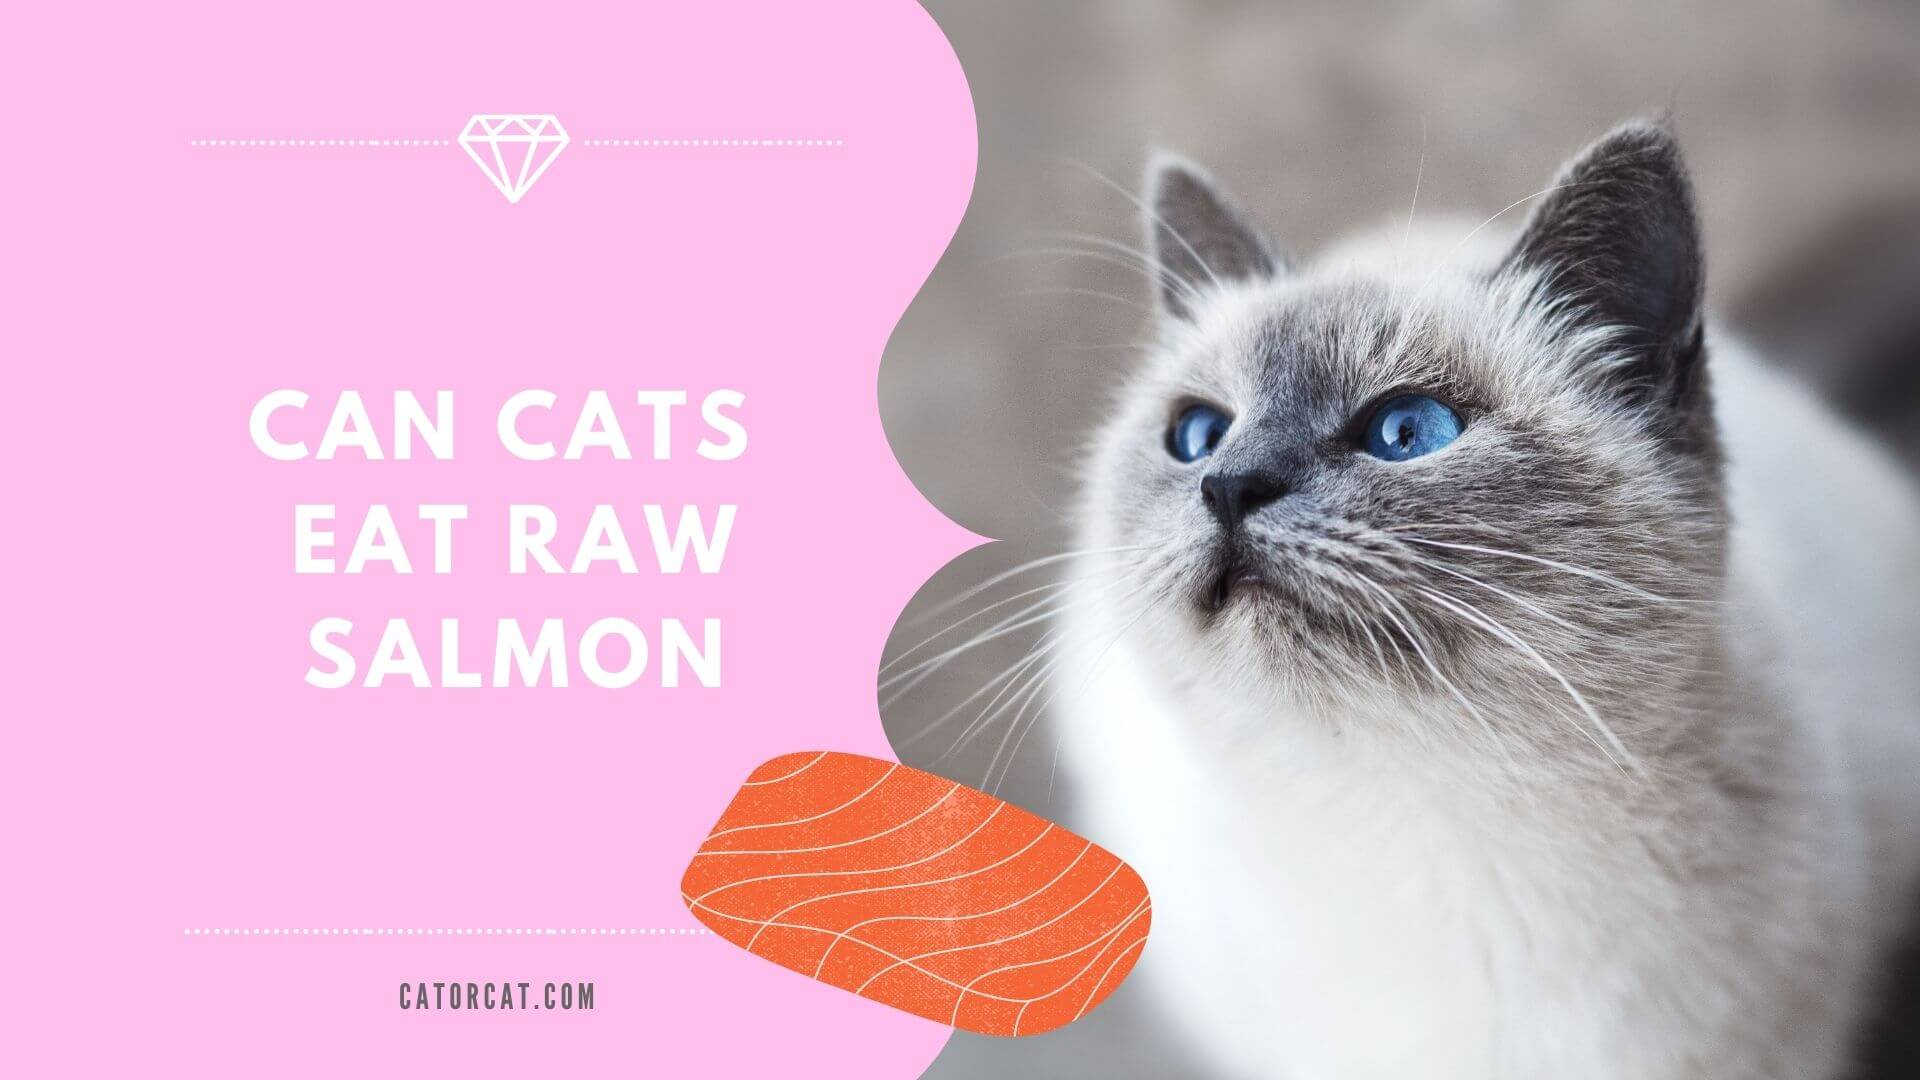 Can cats eat raw salmon